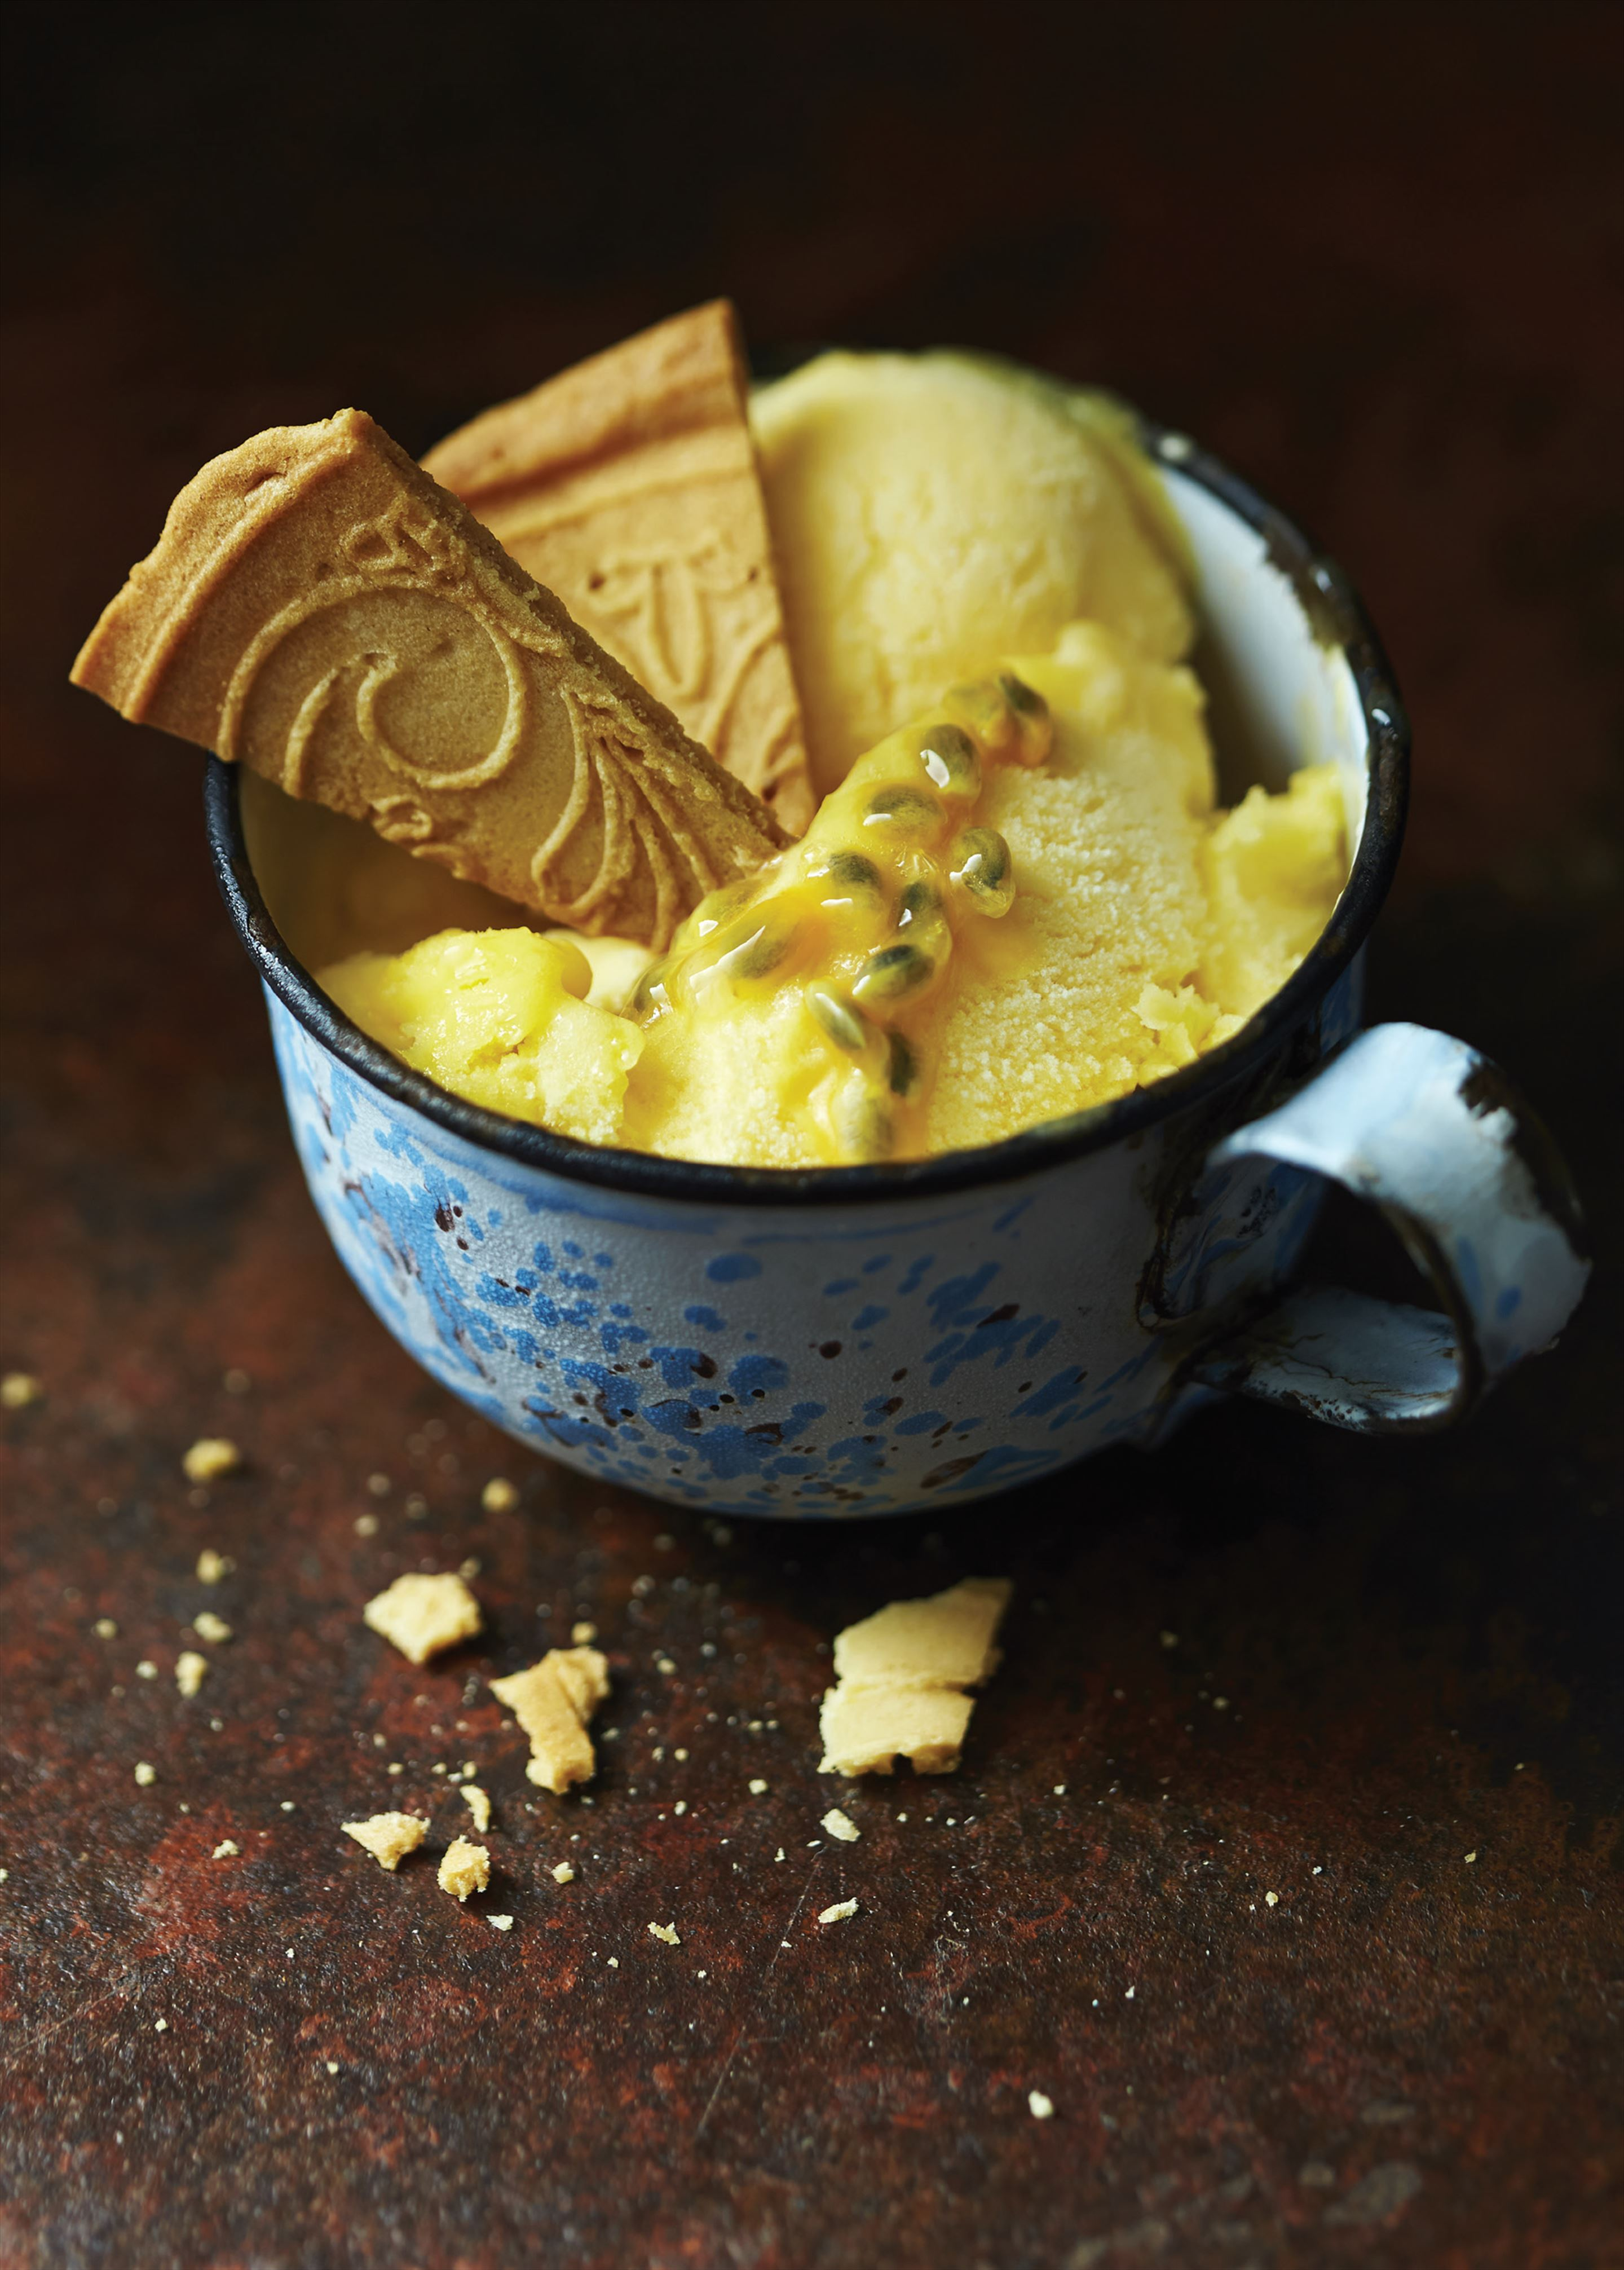 Mango and passionfruit sorbet